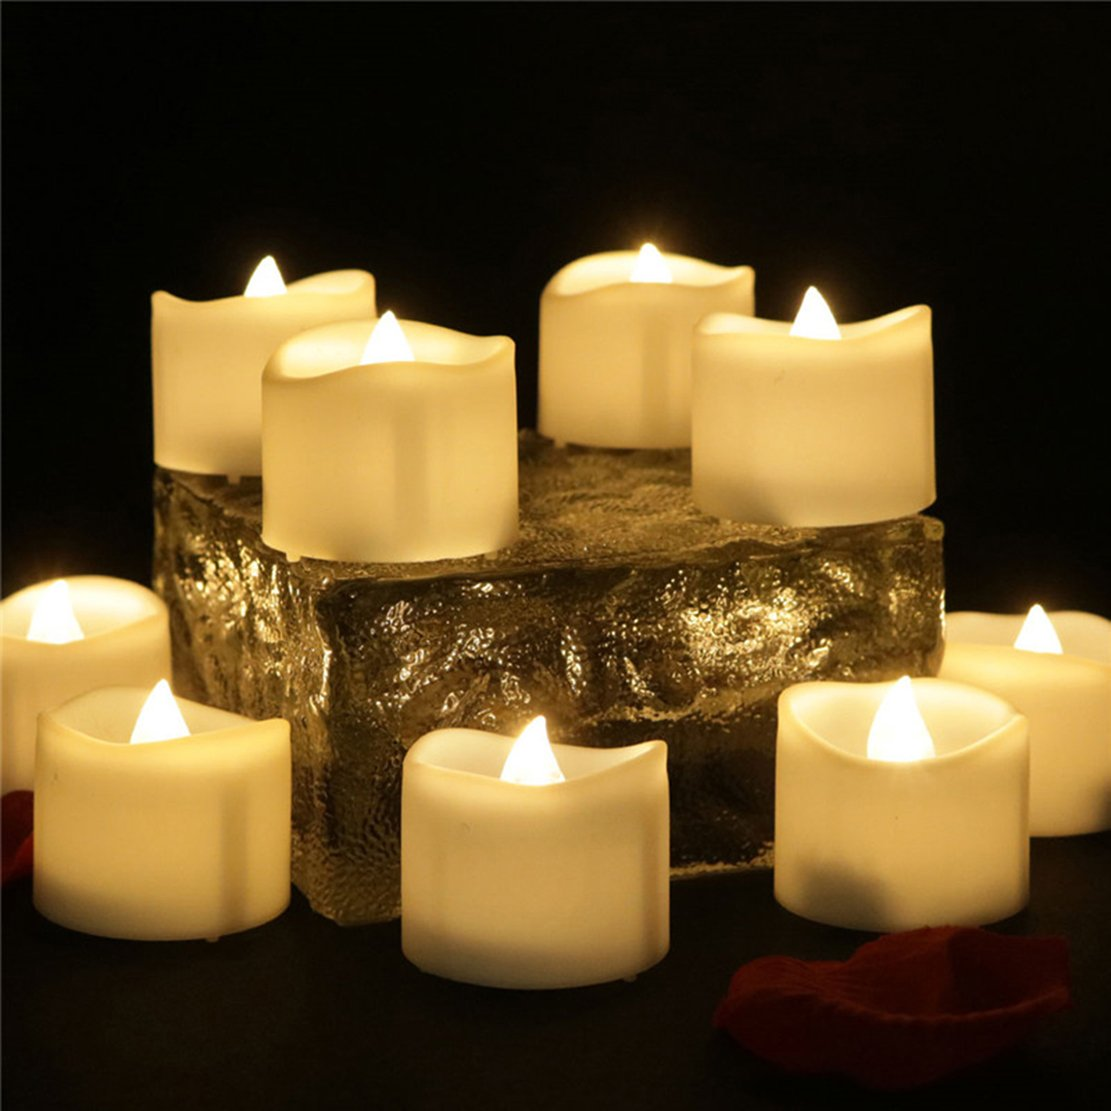 200 Hours Led Mini Tea Light with Timer (6 Hrs On 18 Hrs Off) Flameless Warm White Flickering Fake Votive Candle Wavy Open Rustic Long Lasting Electric Timed Tealights Party Home Wedding Decor 96 PCS by Beauty Collector (Image #6)